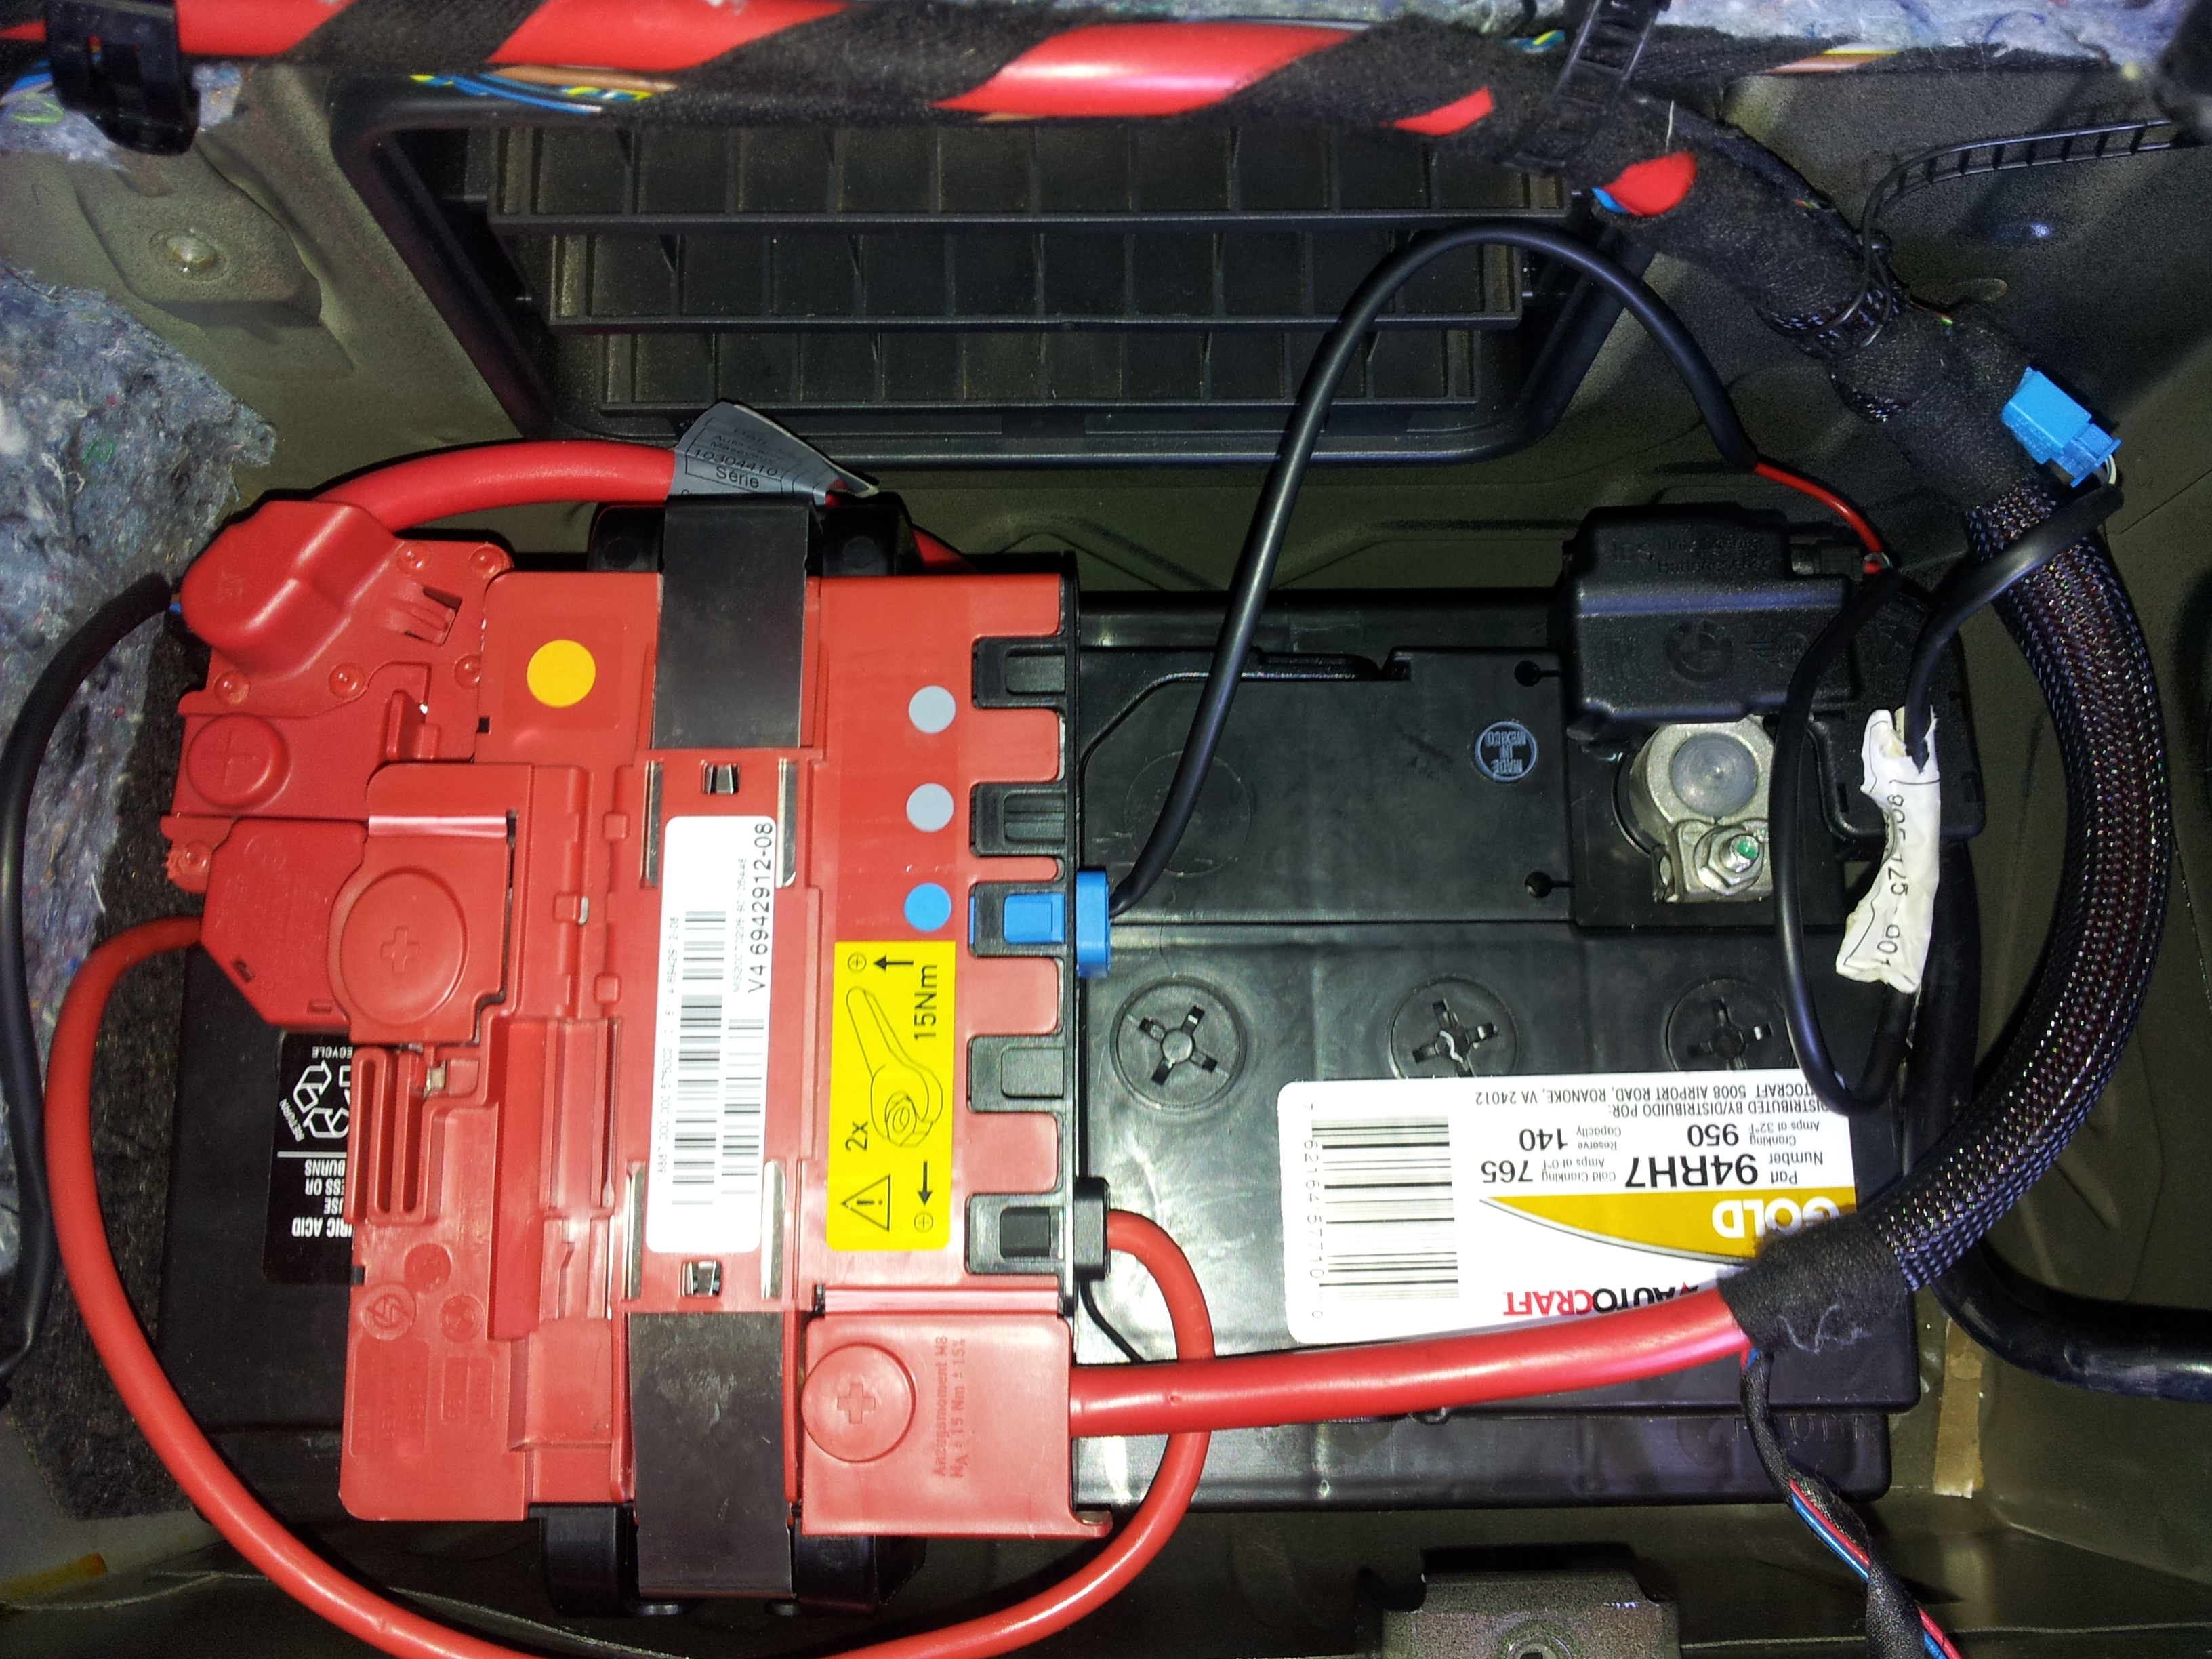 2007 bmw 328i battery wiring 19 17 depo aqua de \u2022seat belt and airbag light after battery install rh e90post com 2007 bmw 328i battery cable recall 2007 bmw 328i battery wiring